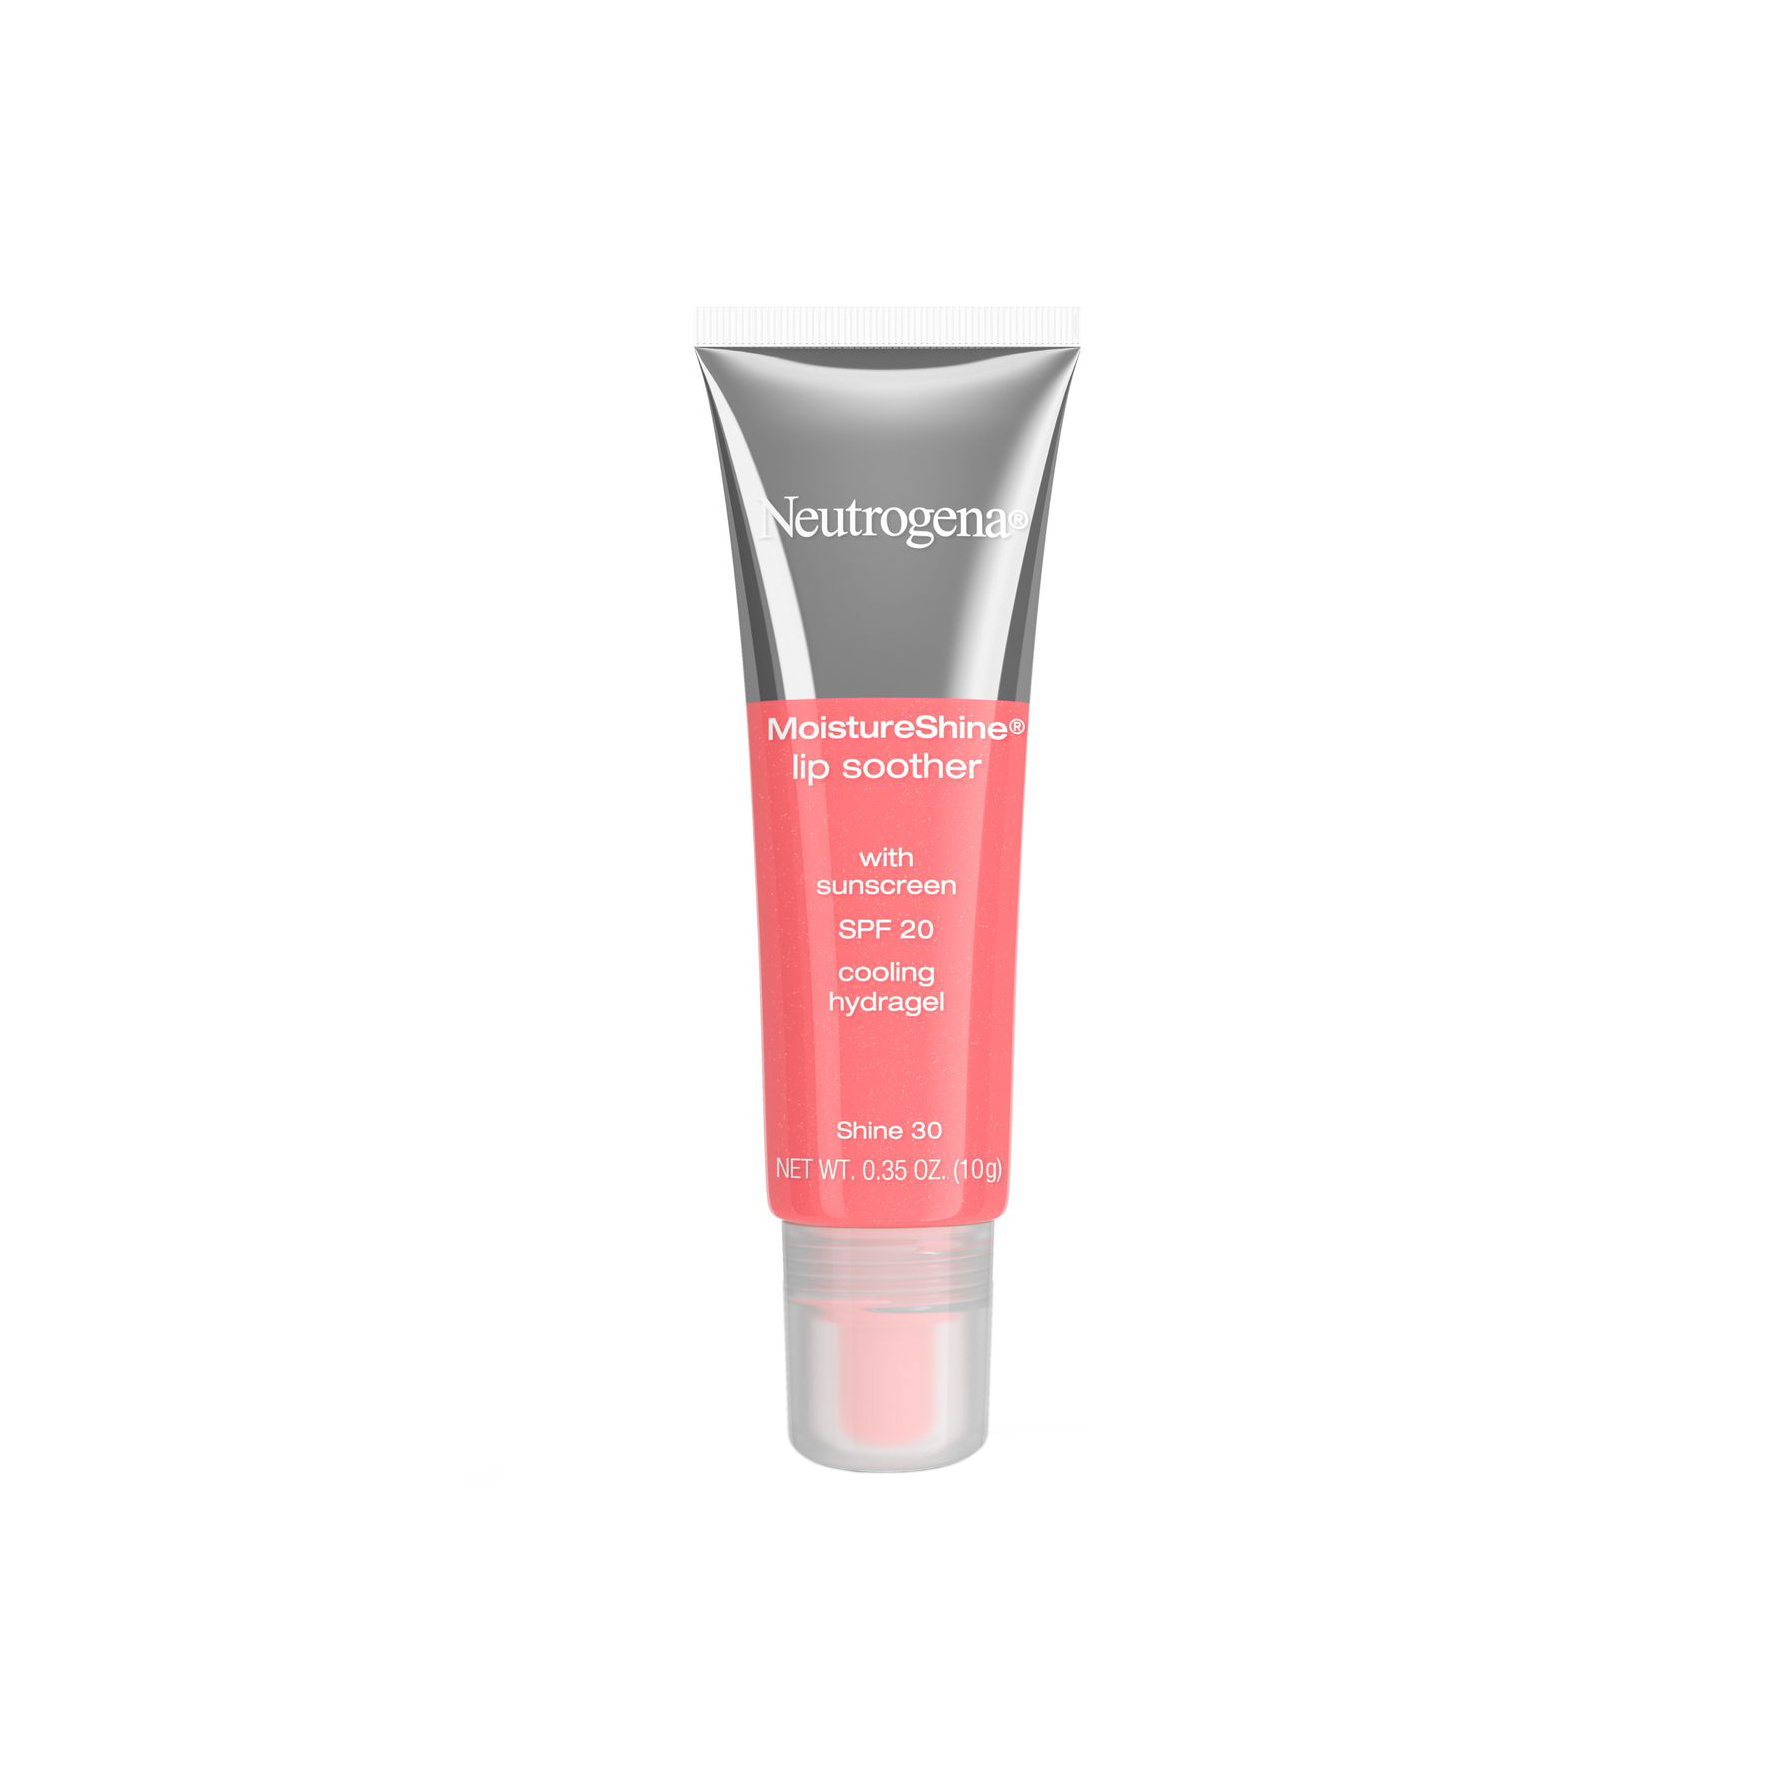 Neutrogena MoistureShine Lip Soother SPF 20